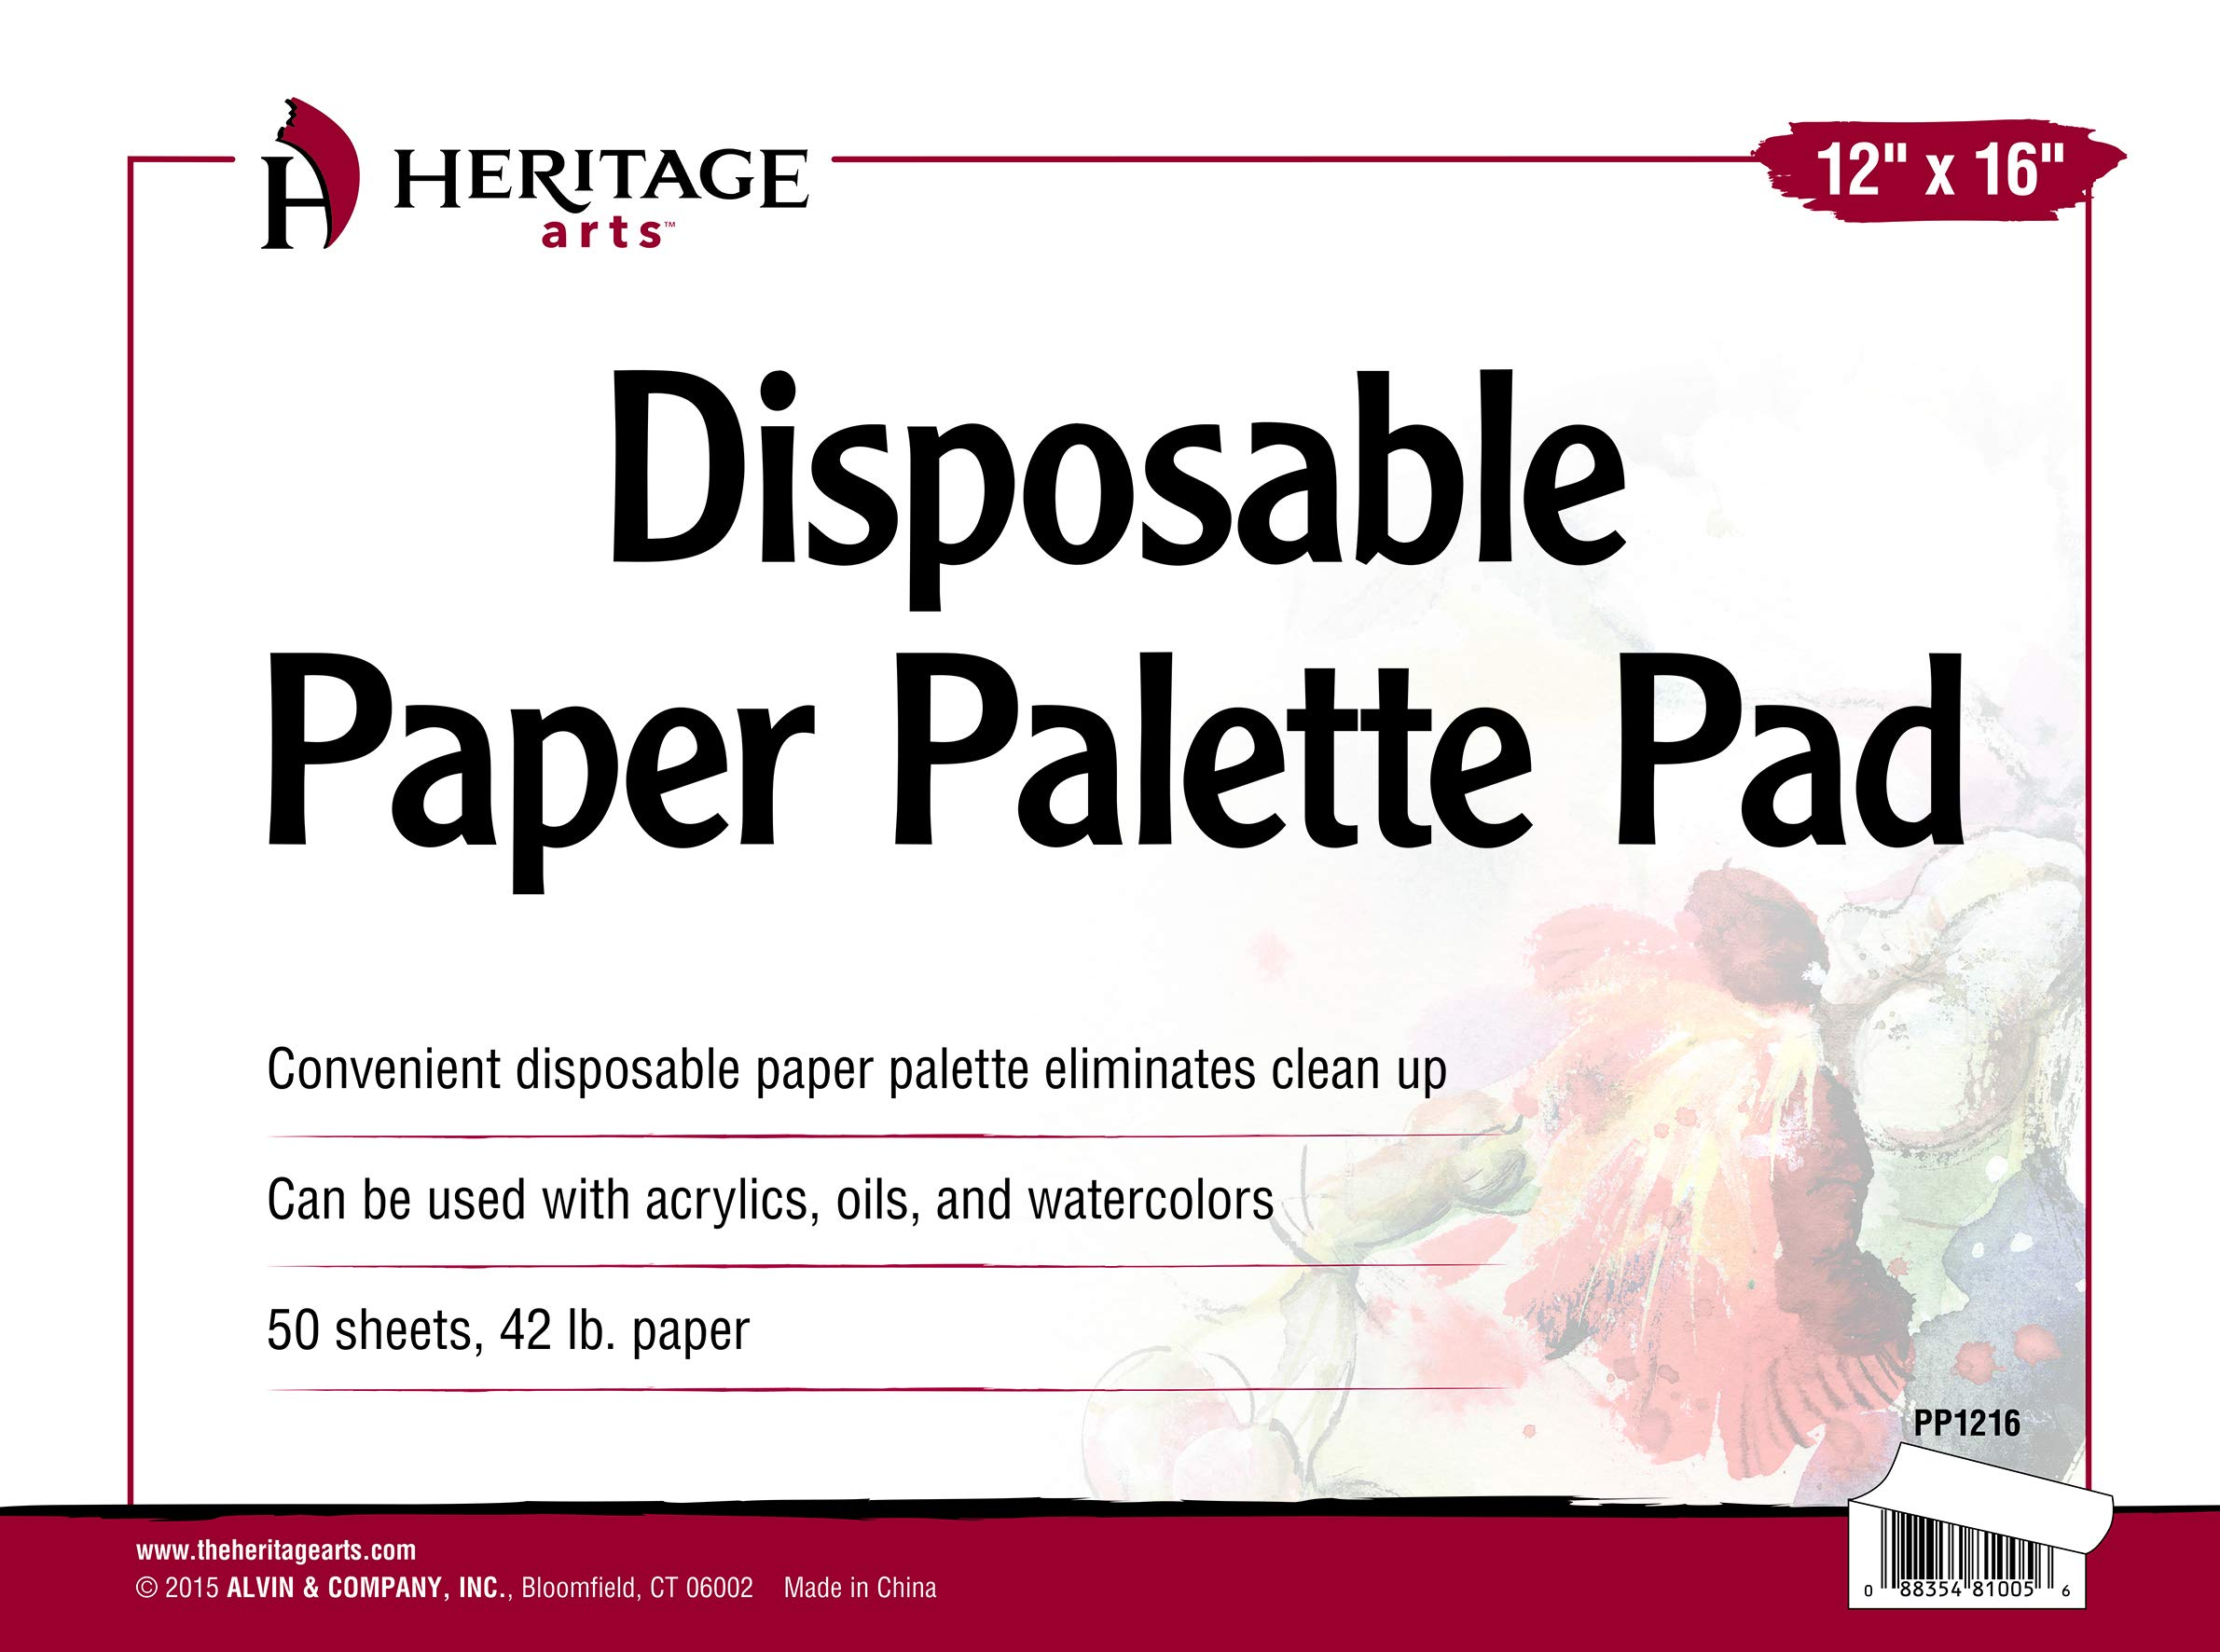 Heritage Arts PP1216 Disposable Paper Palette Pad 12 inches x 16 inches by Alvin and Co.